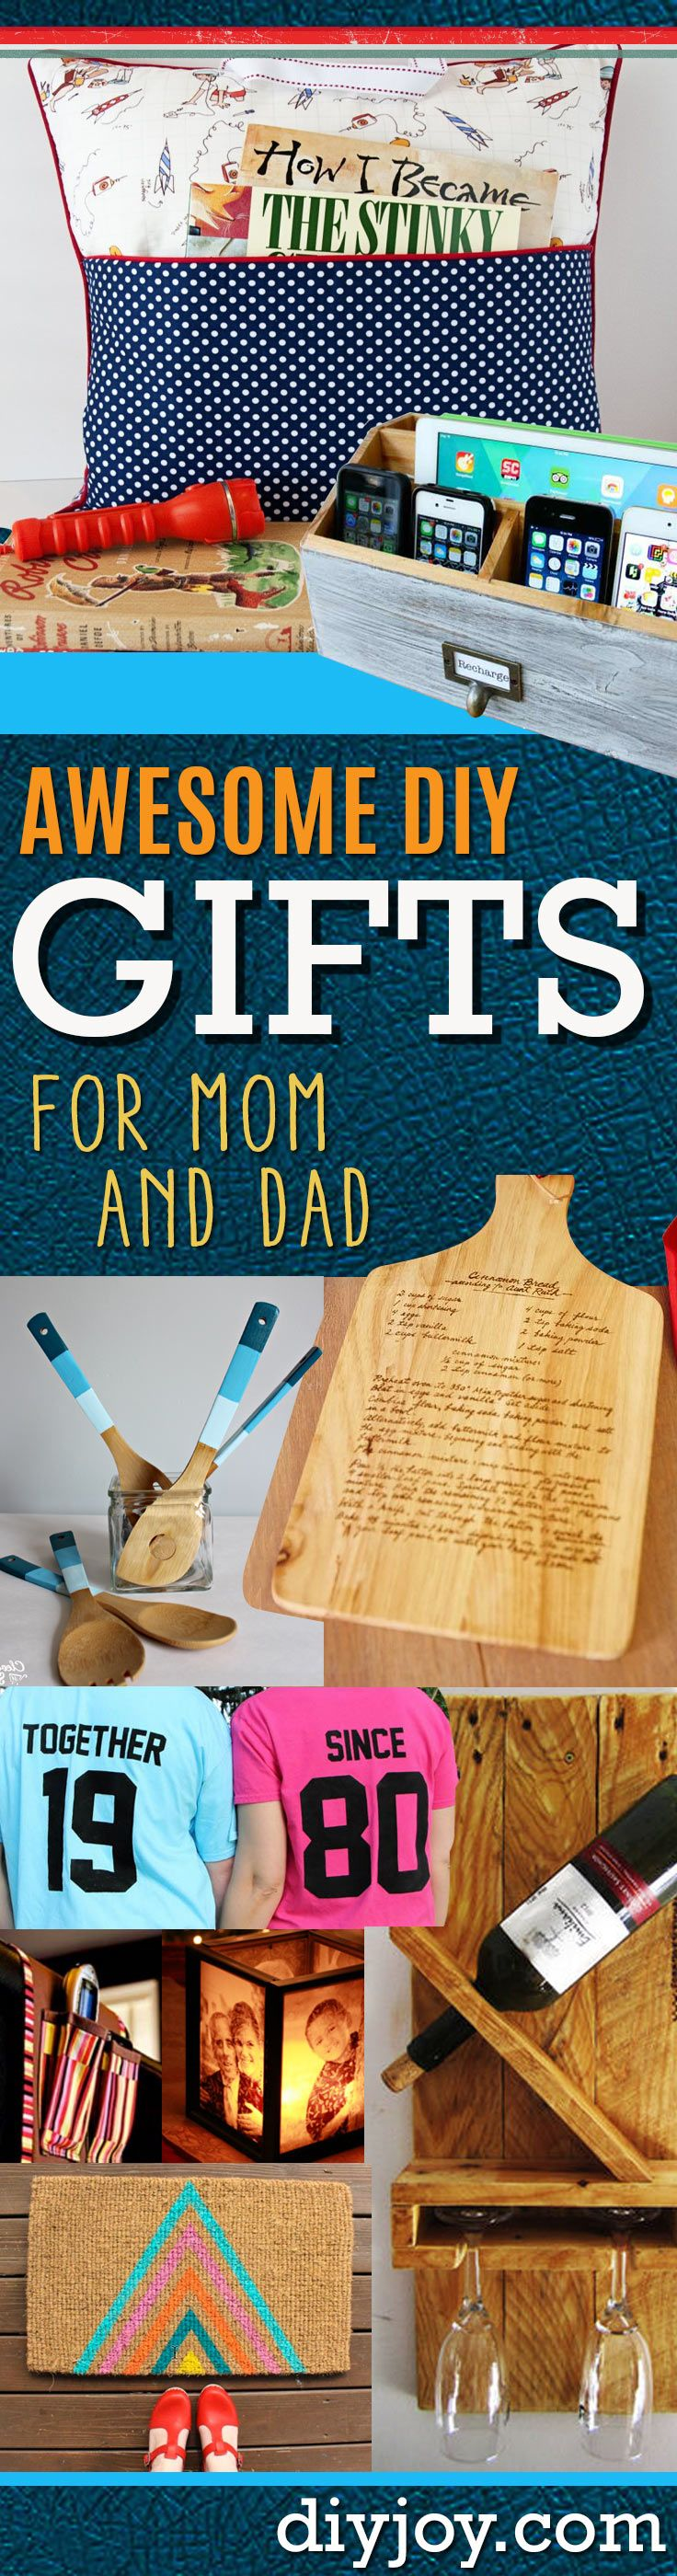 61 Best Images About Diy Gift Ideas On Pinterest